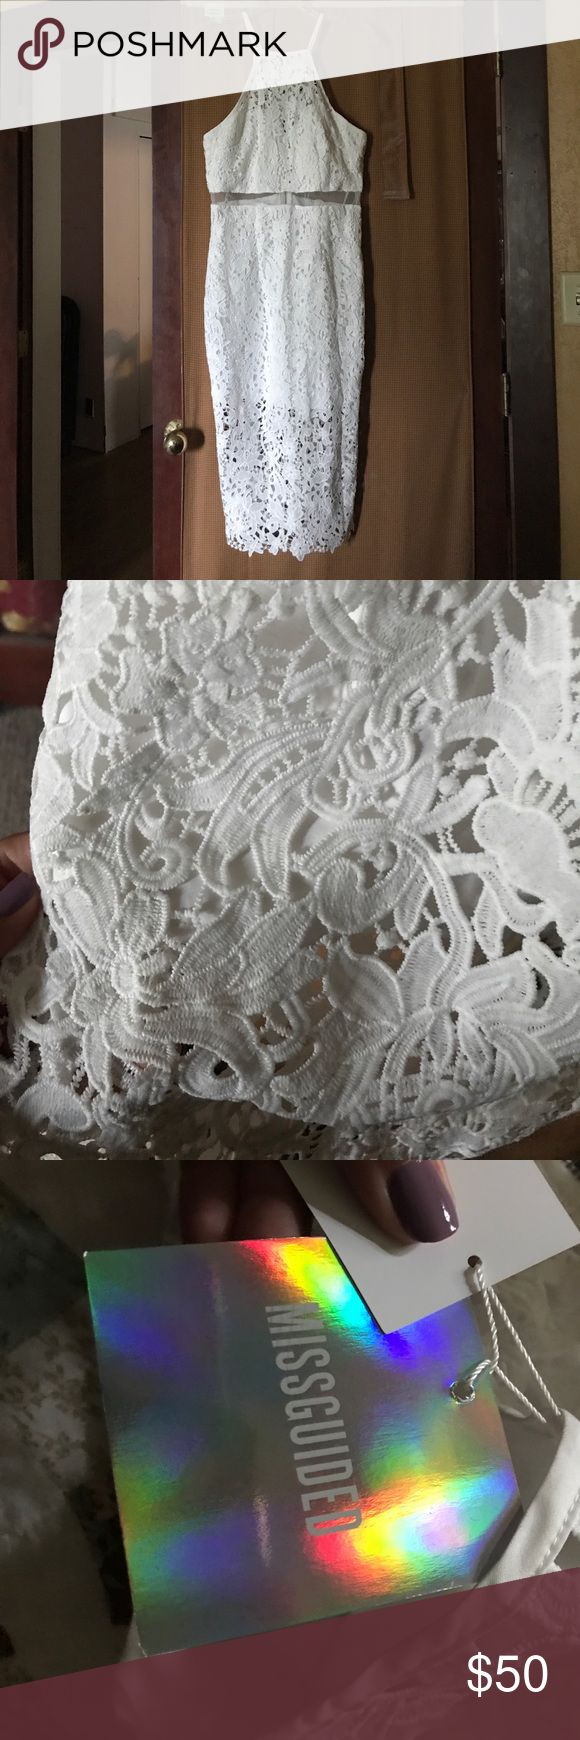 NWT Missguided white lace strappy midi dress Beautiful white lace midi dress from Missguided in a US size 8. Fits a 6/8 wonderfully, I just decided I didn't want it anymore. New with tags. Missguided Dresses Midi